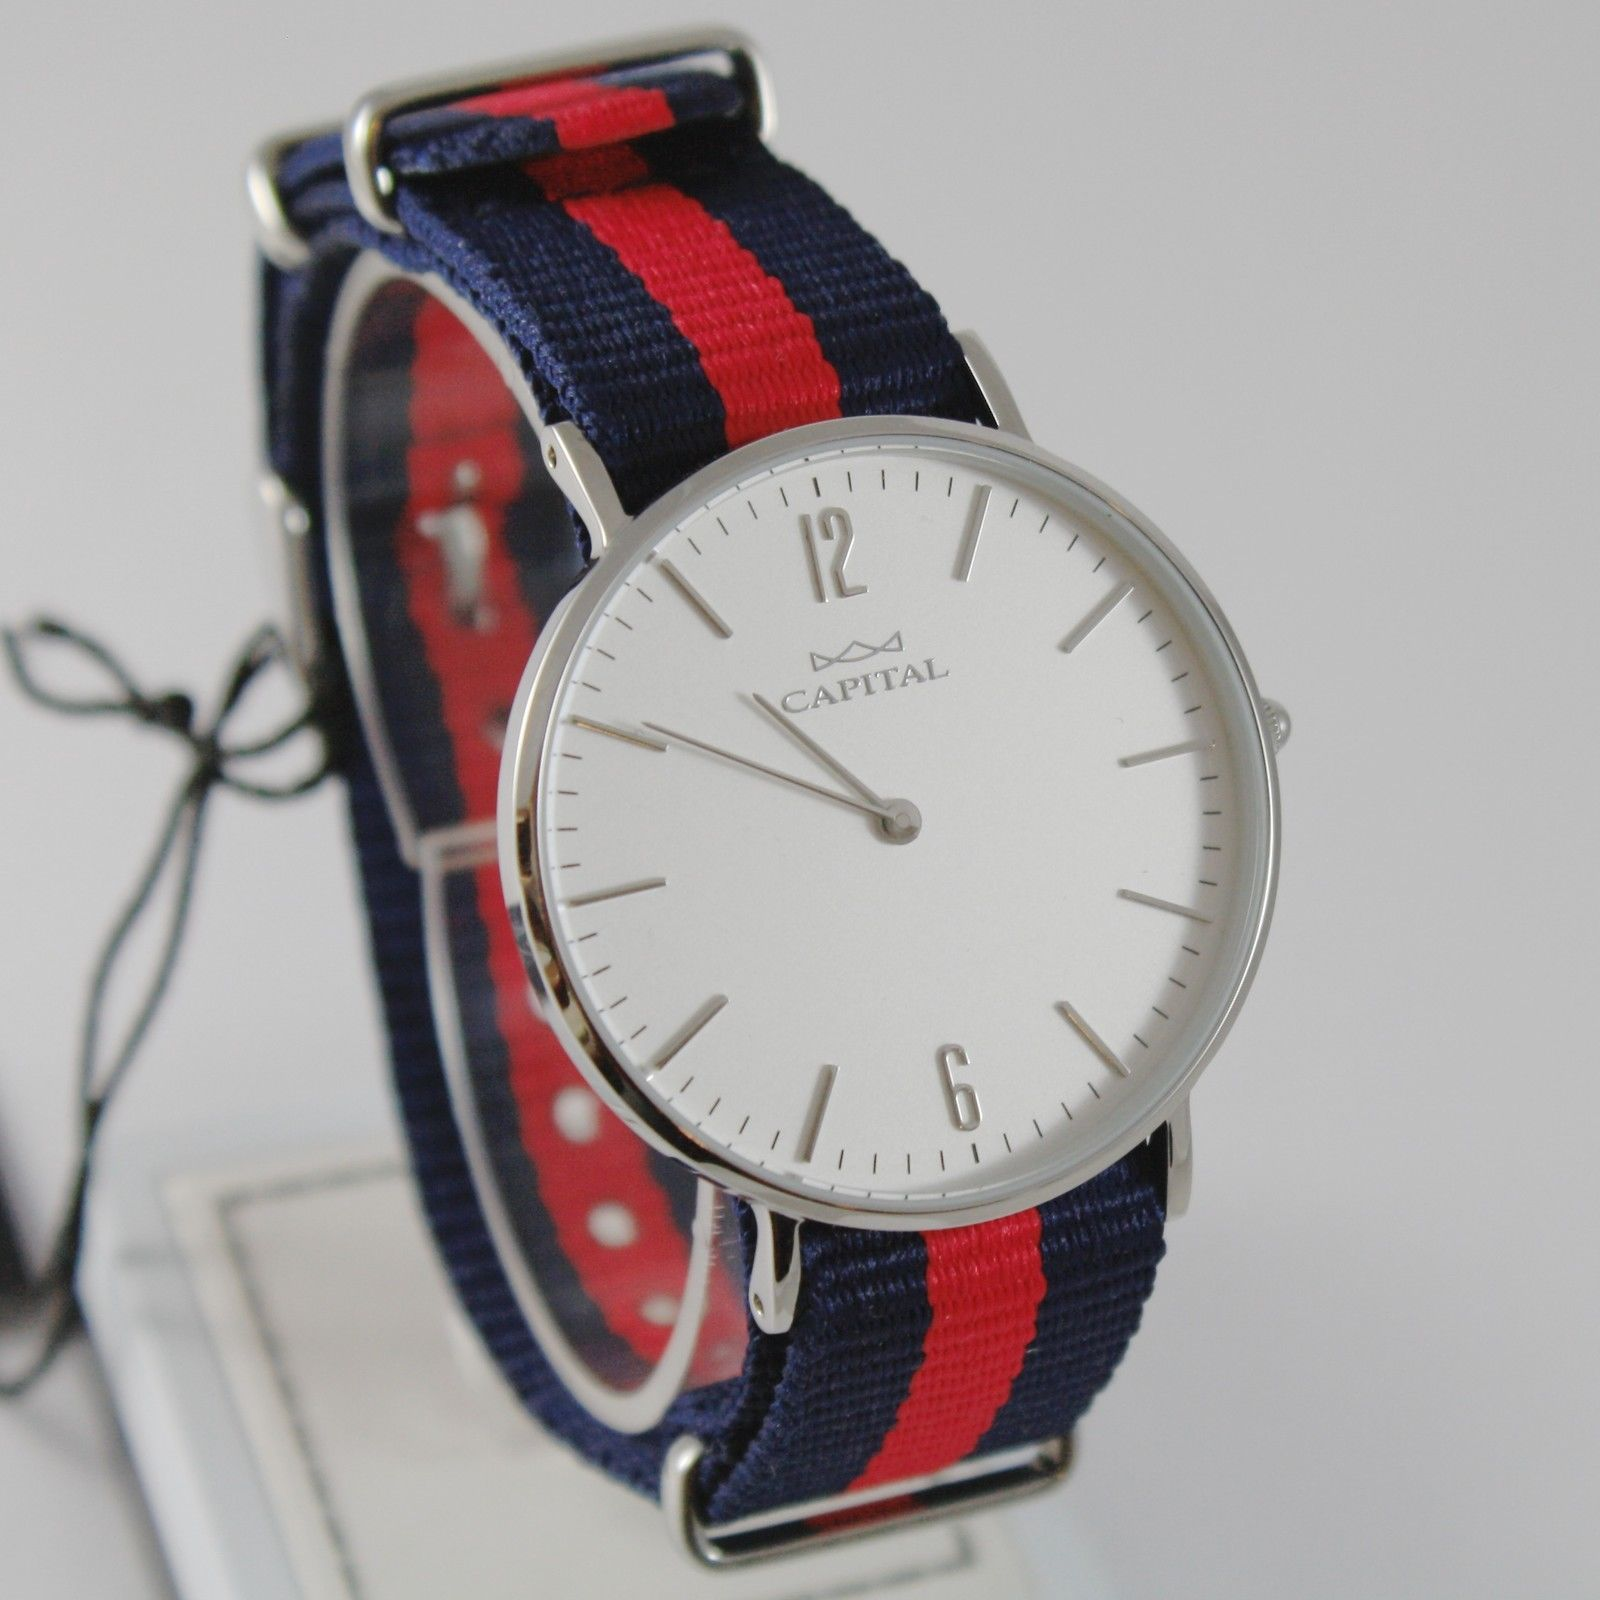 CAPITAL WATCH QUARTZ MOVEMENT 36 MM CASE, BLUE AND RED FABRIC BAND NYLON VINTAGE